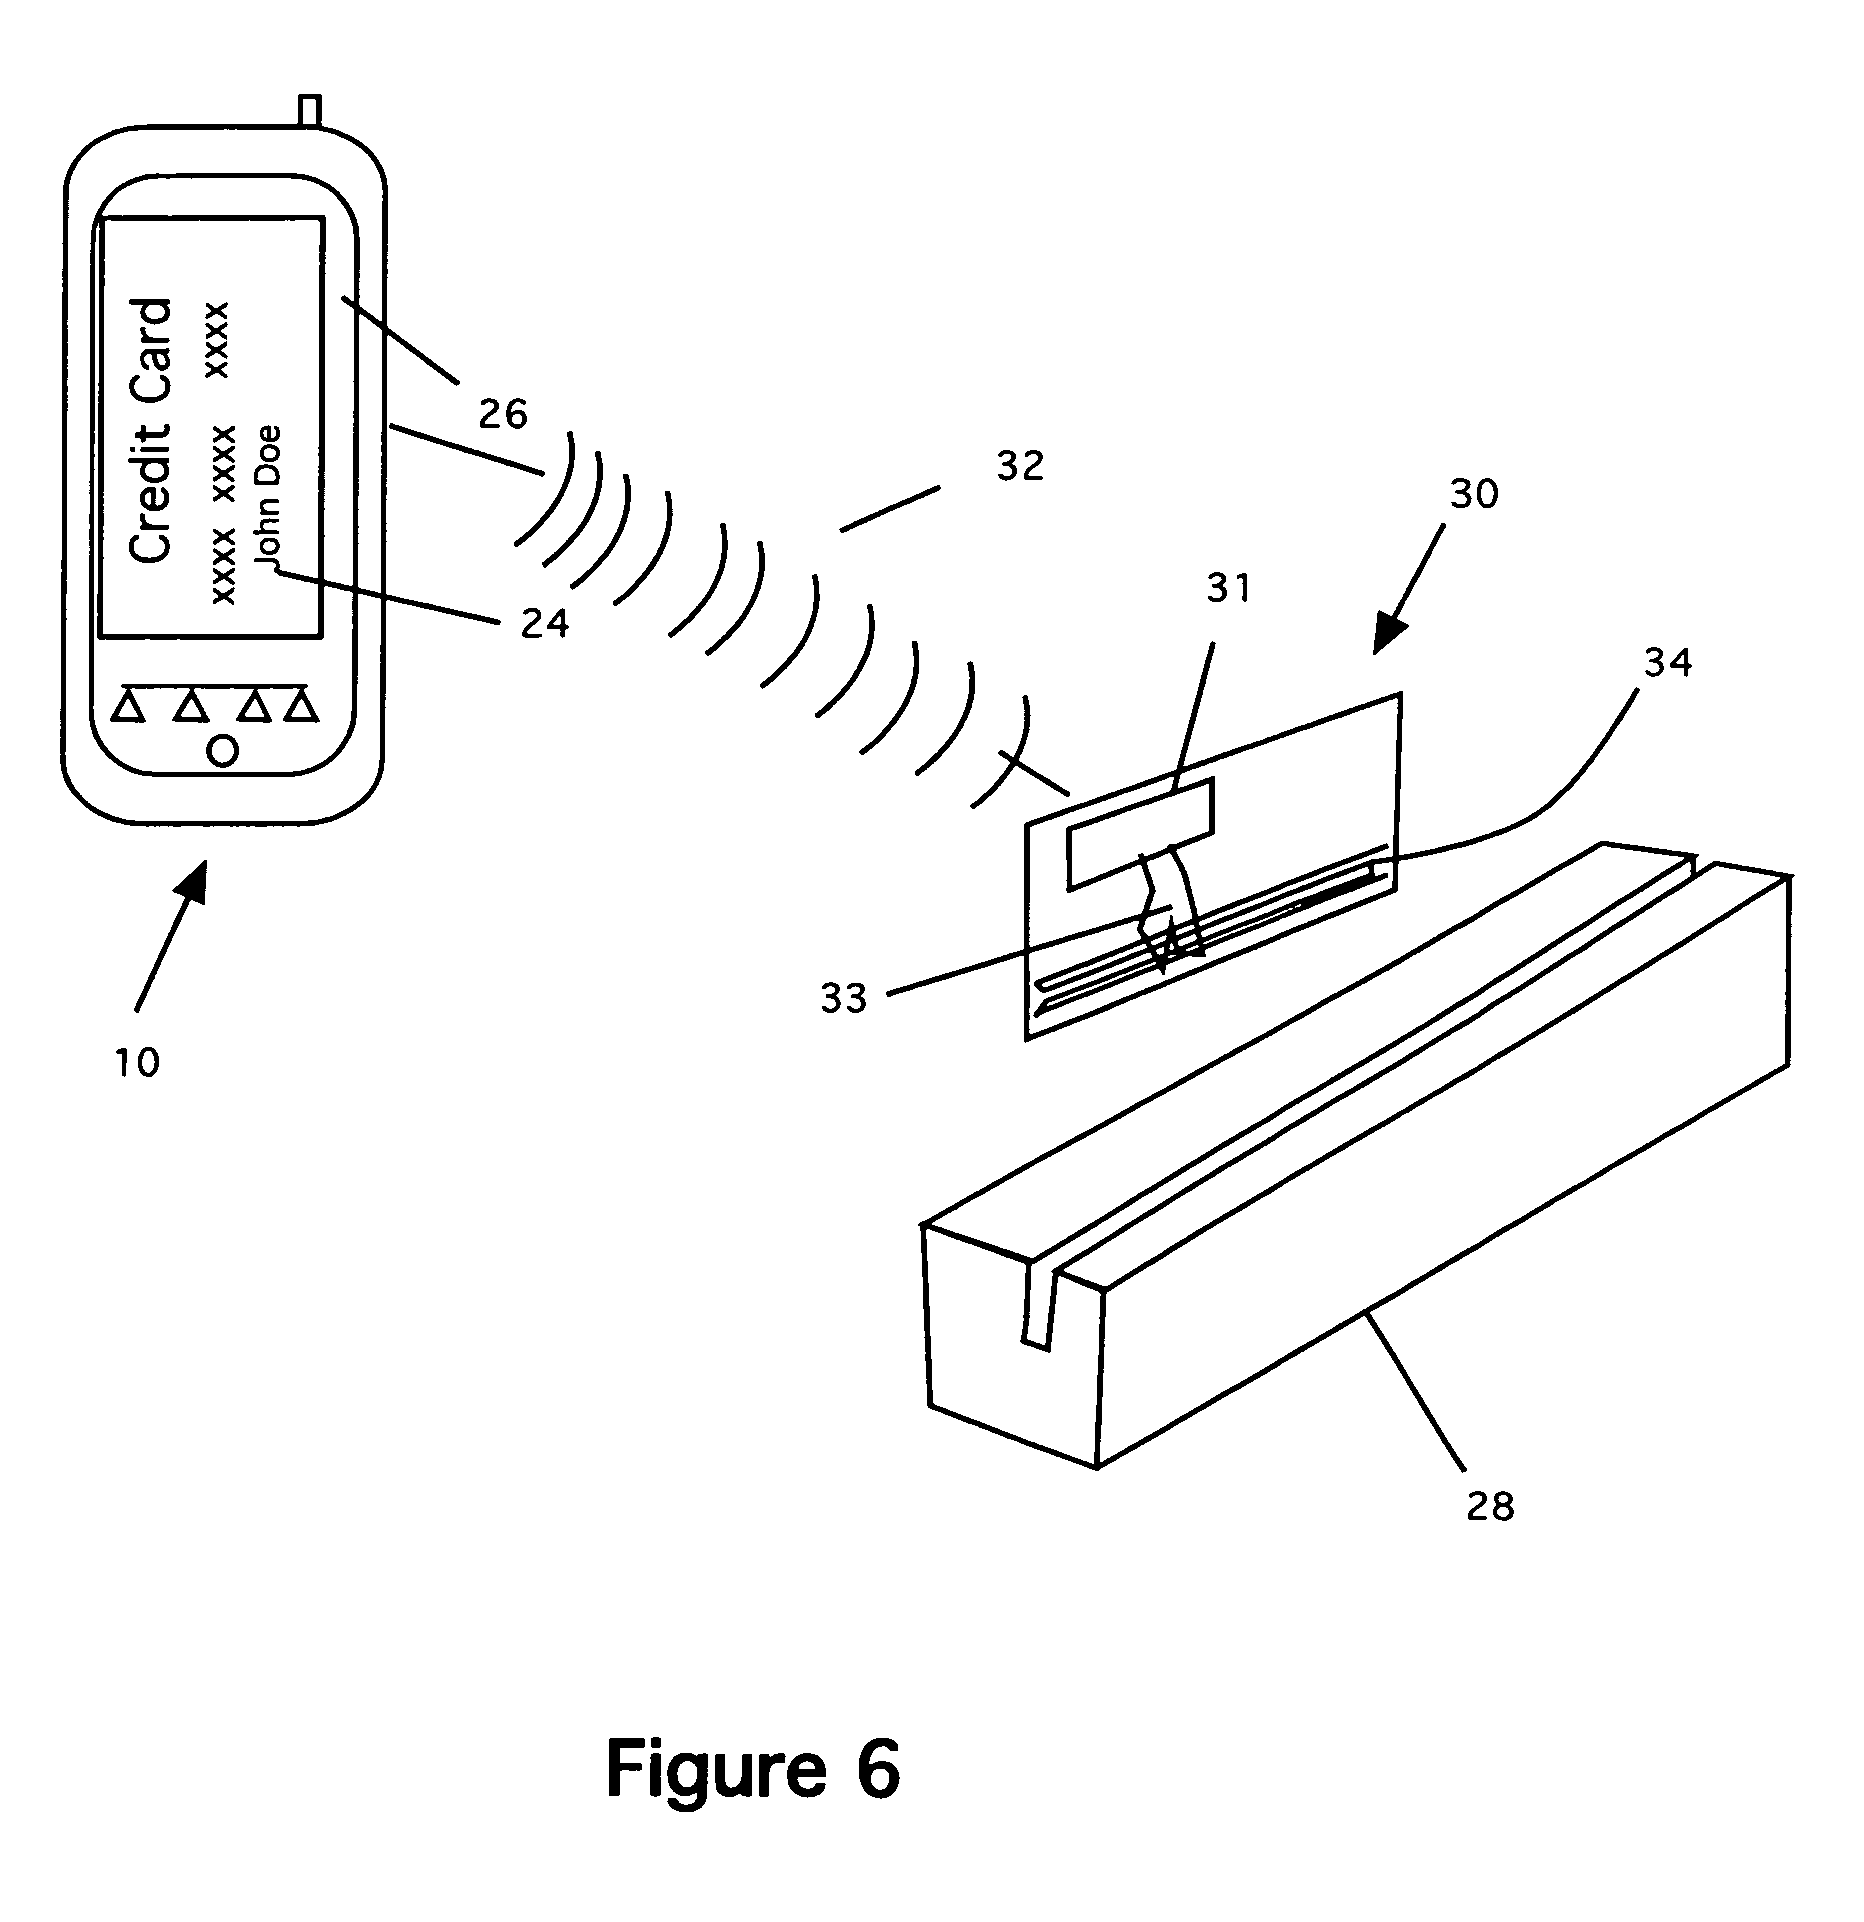 Magnetic Stripe Headset Diagram Simple Electrical Wiring Card Patent Us8376239 Method Of Use A Simulated